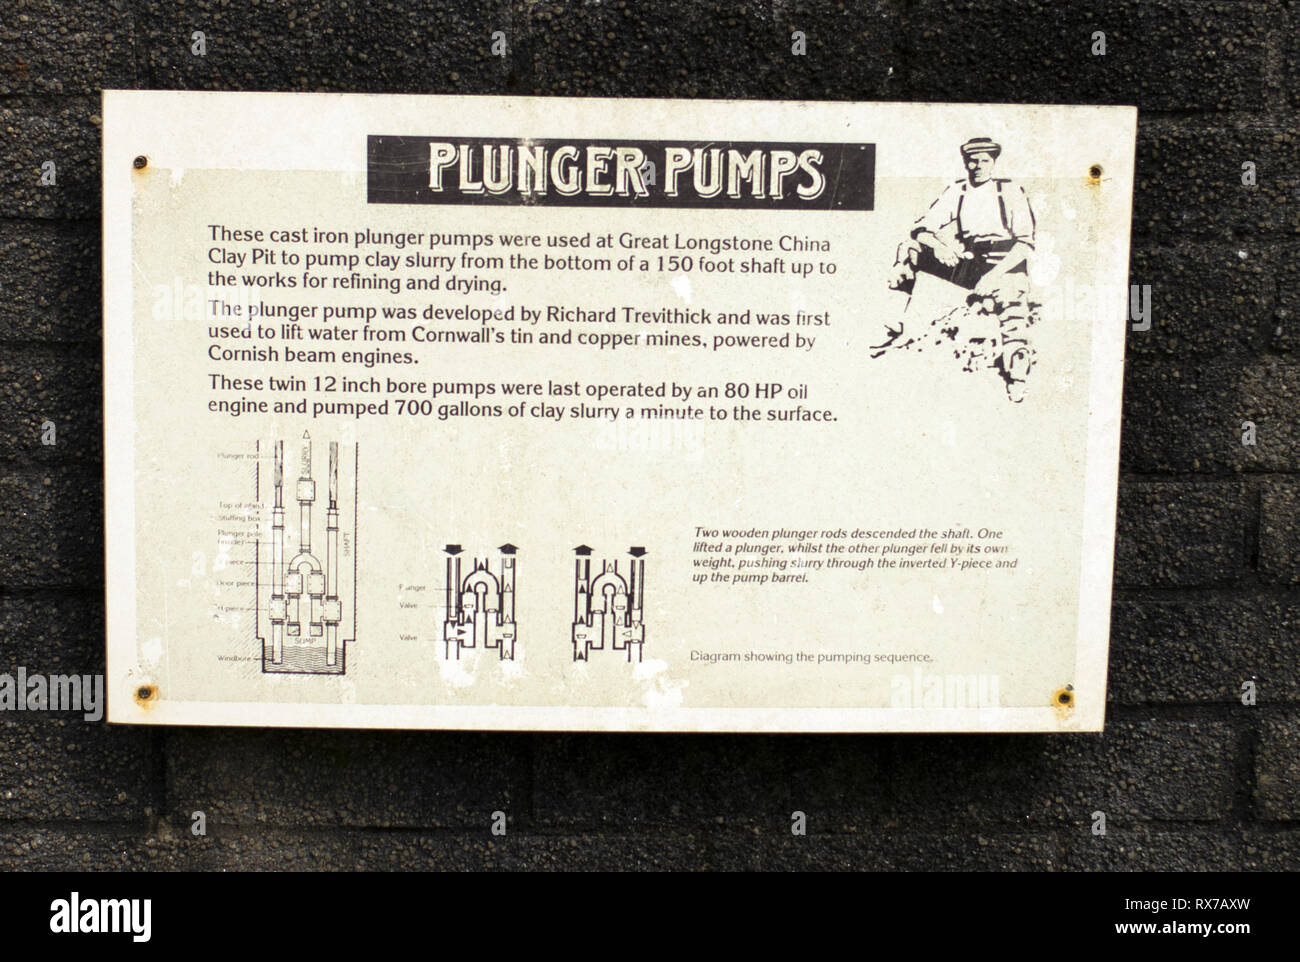 Plunger pumps, great Longstone, china clay pit, Richard Trevithick, St austell Cornwall - Stock Image